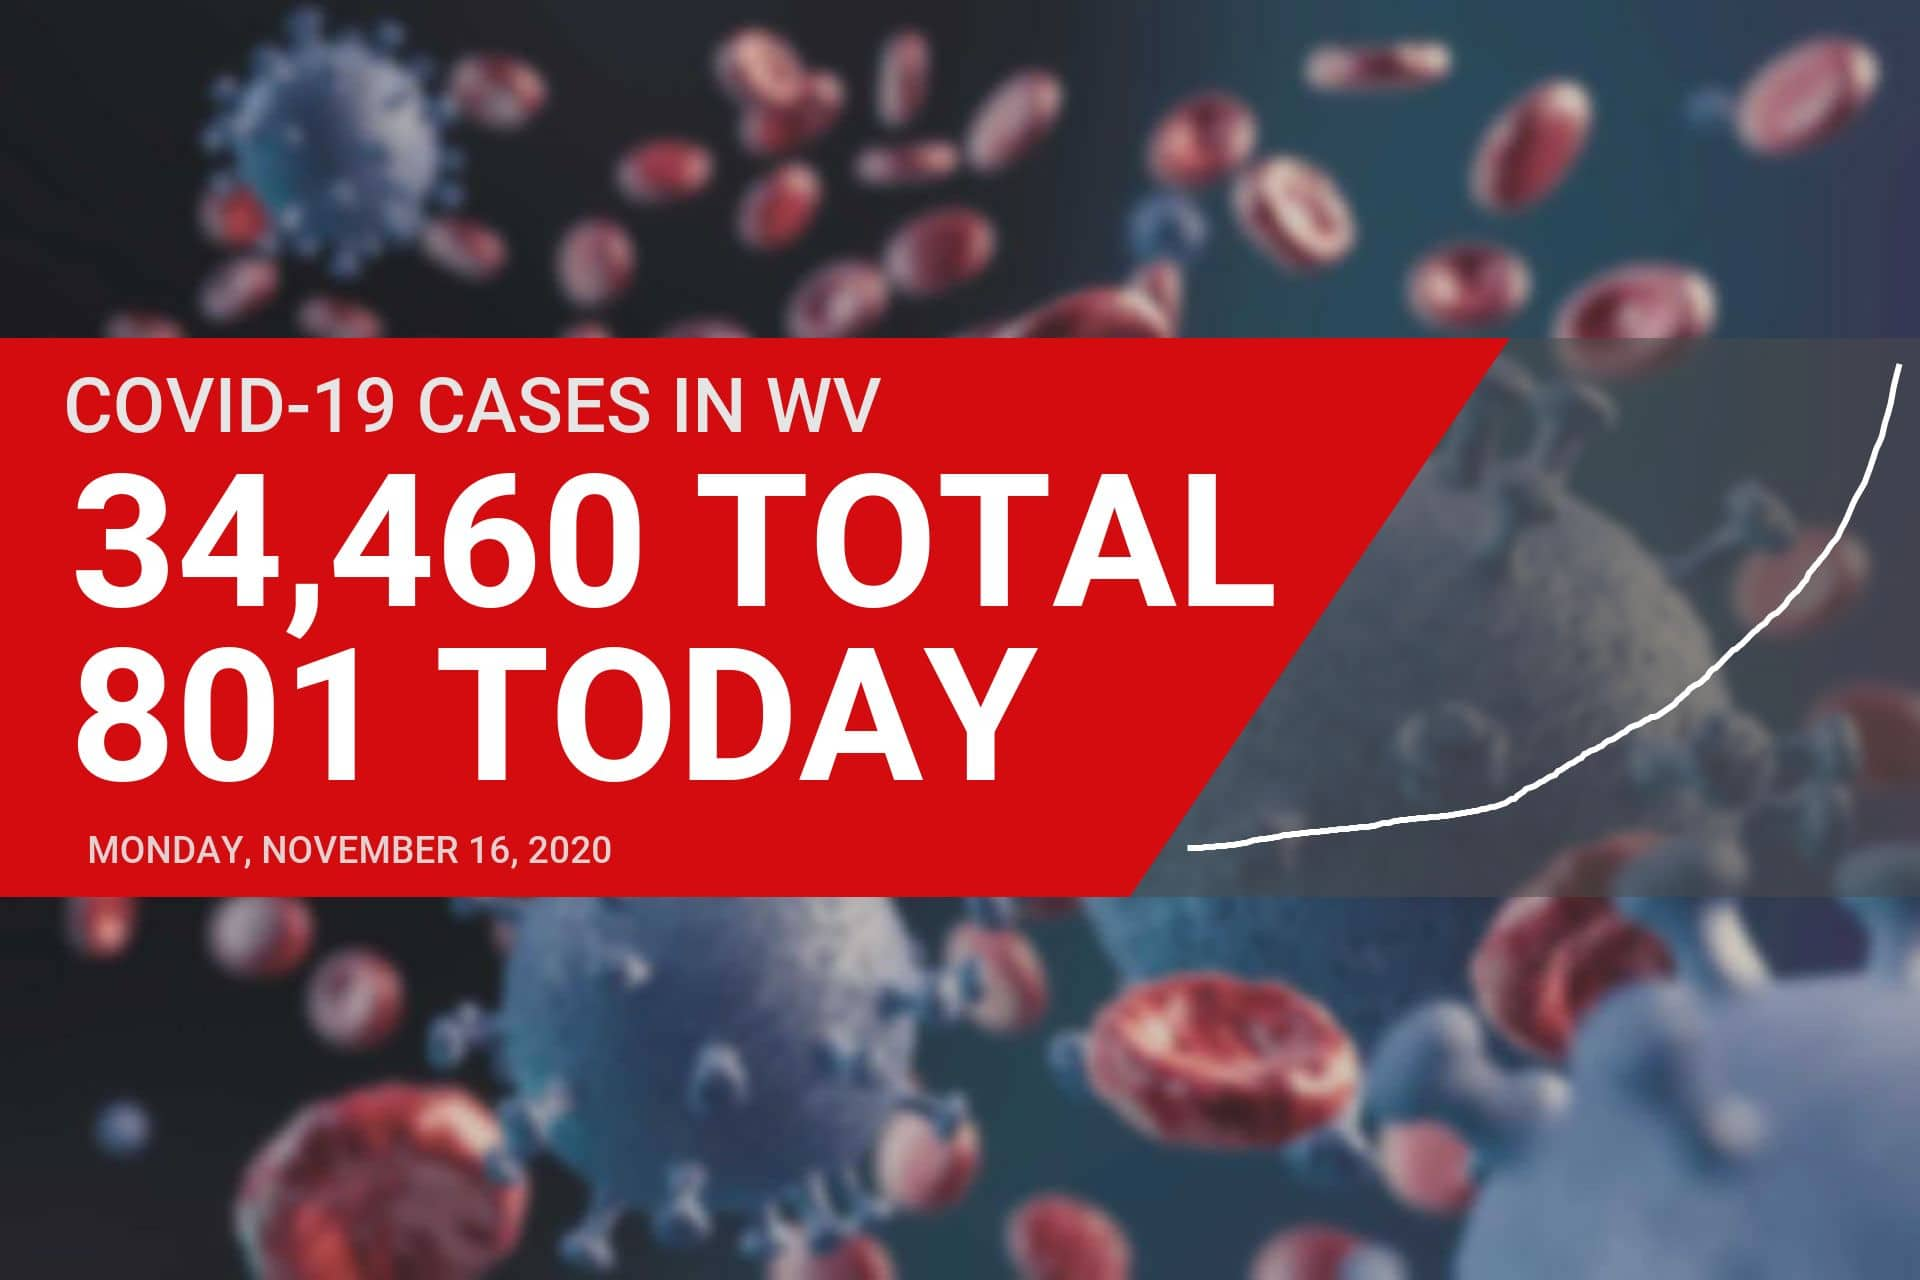 Number of active COVID-19 cases in West Virginia tops 10,000 on Monday